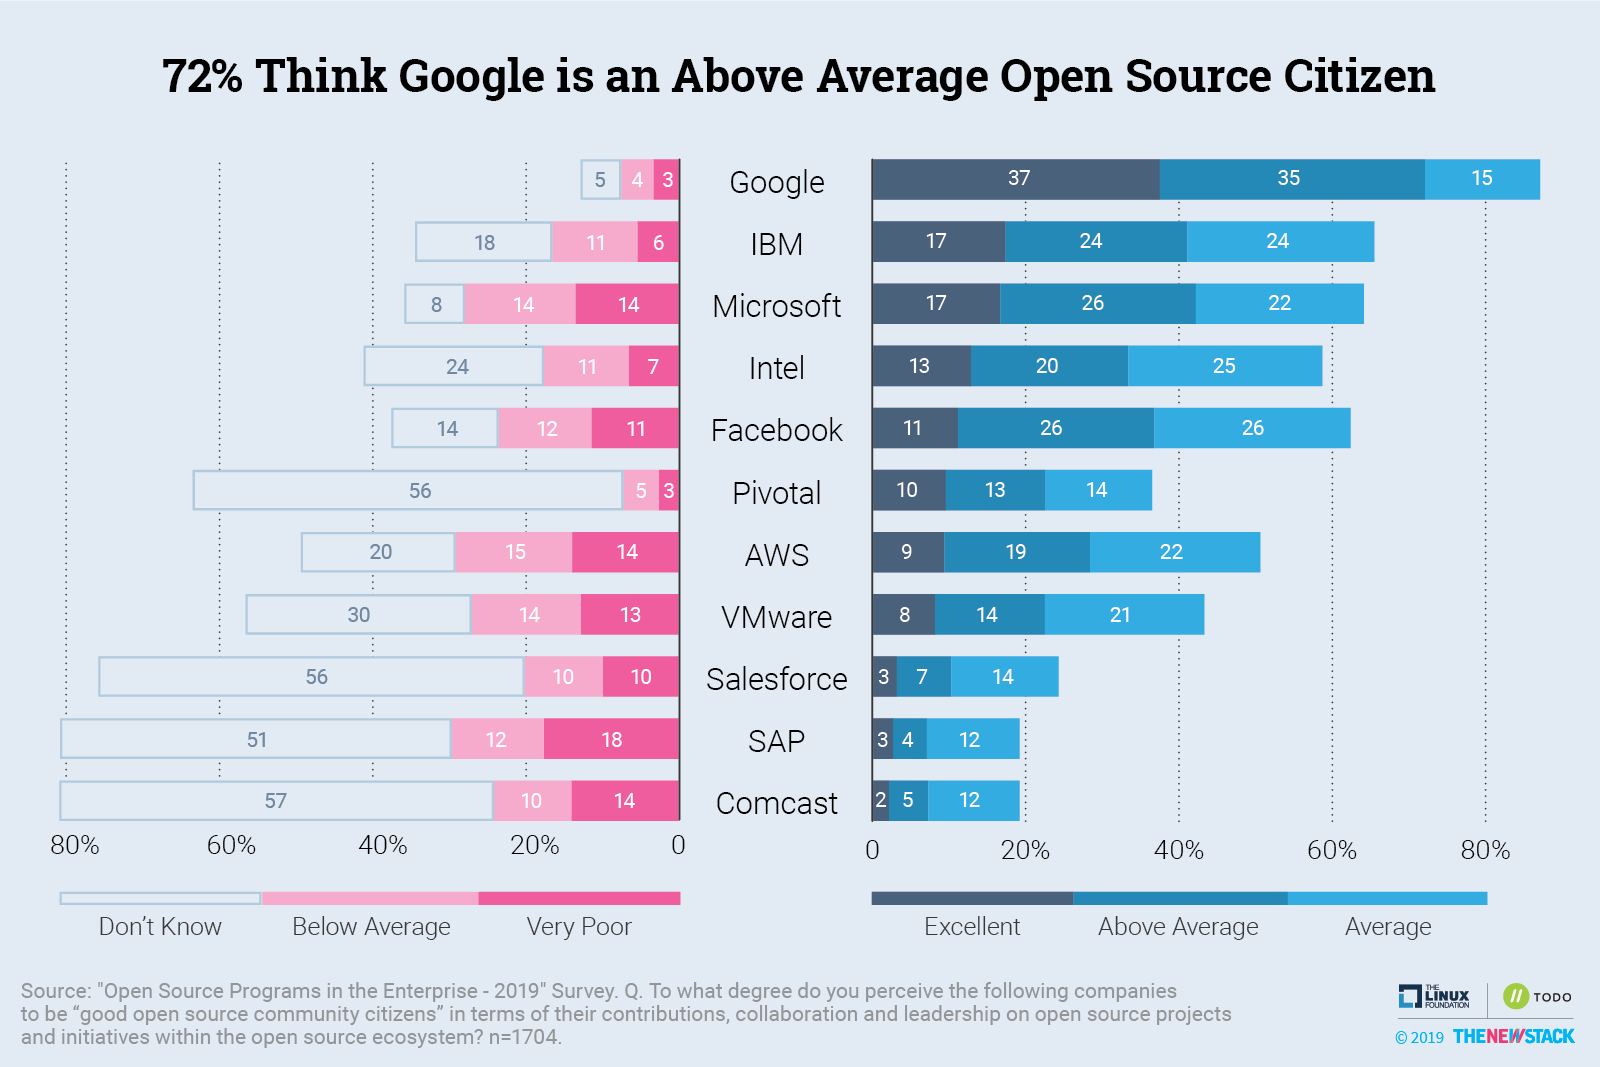 72% Think Google is an Above Average Open Source Citizen